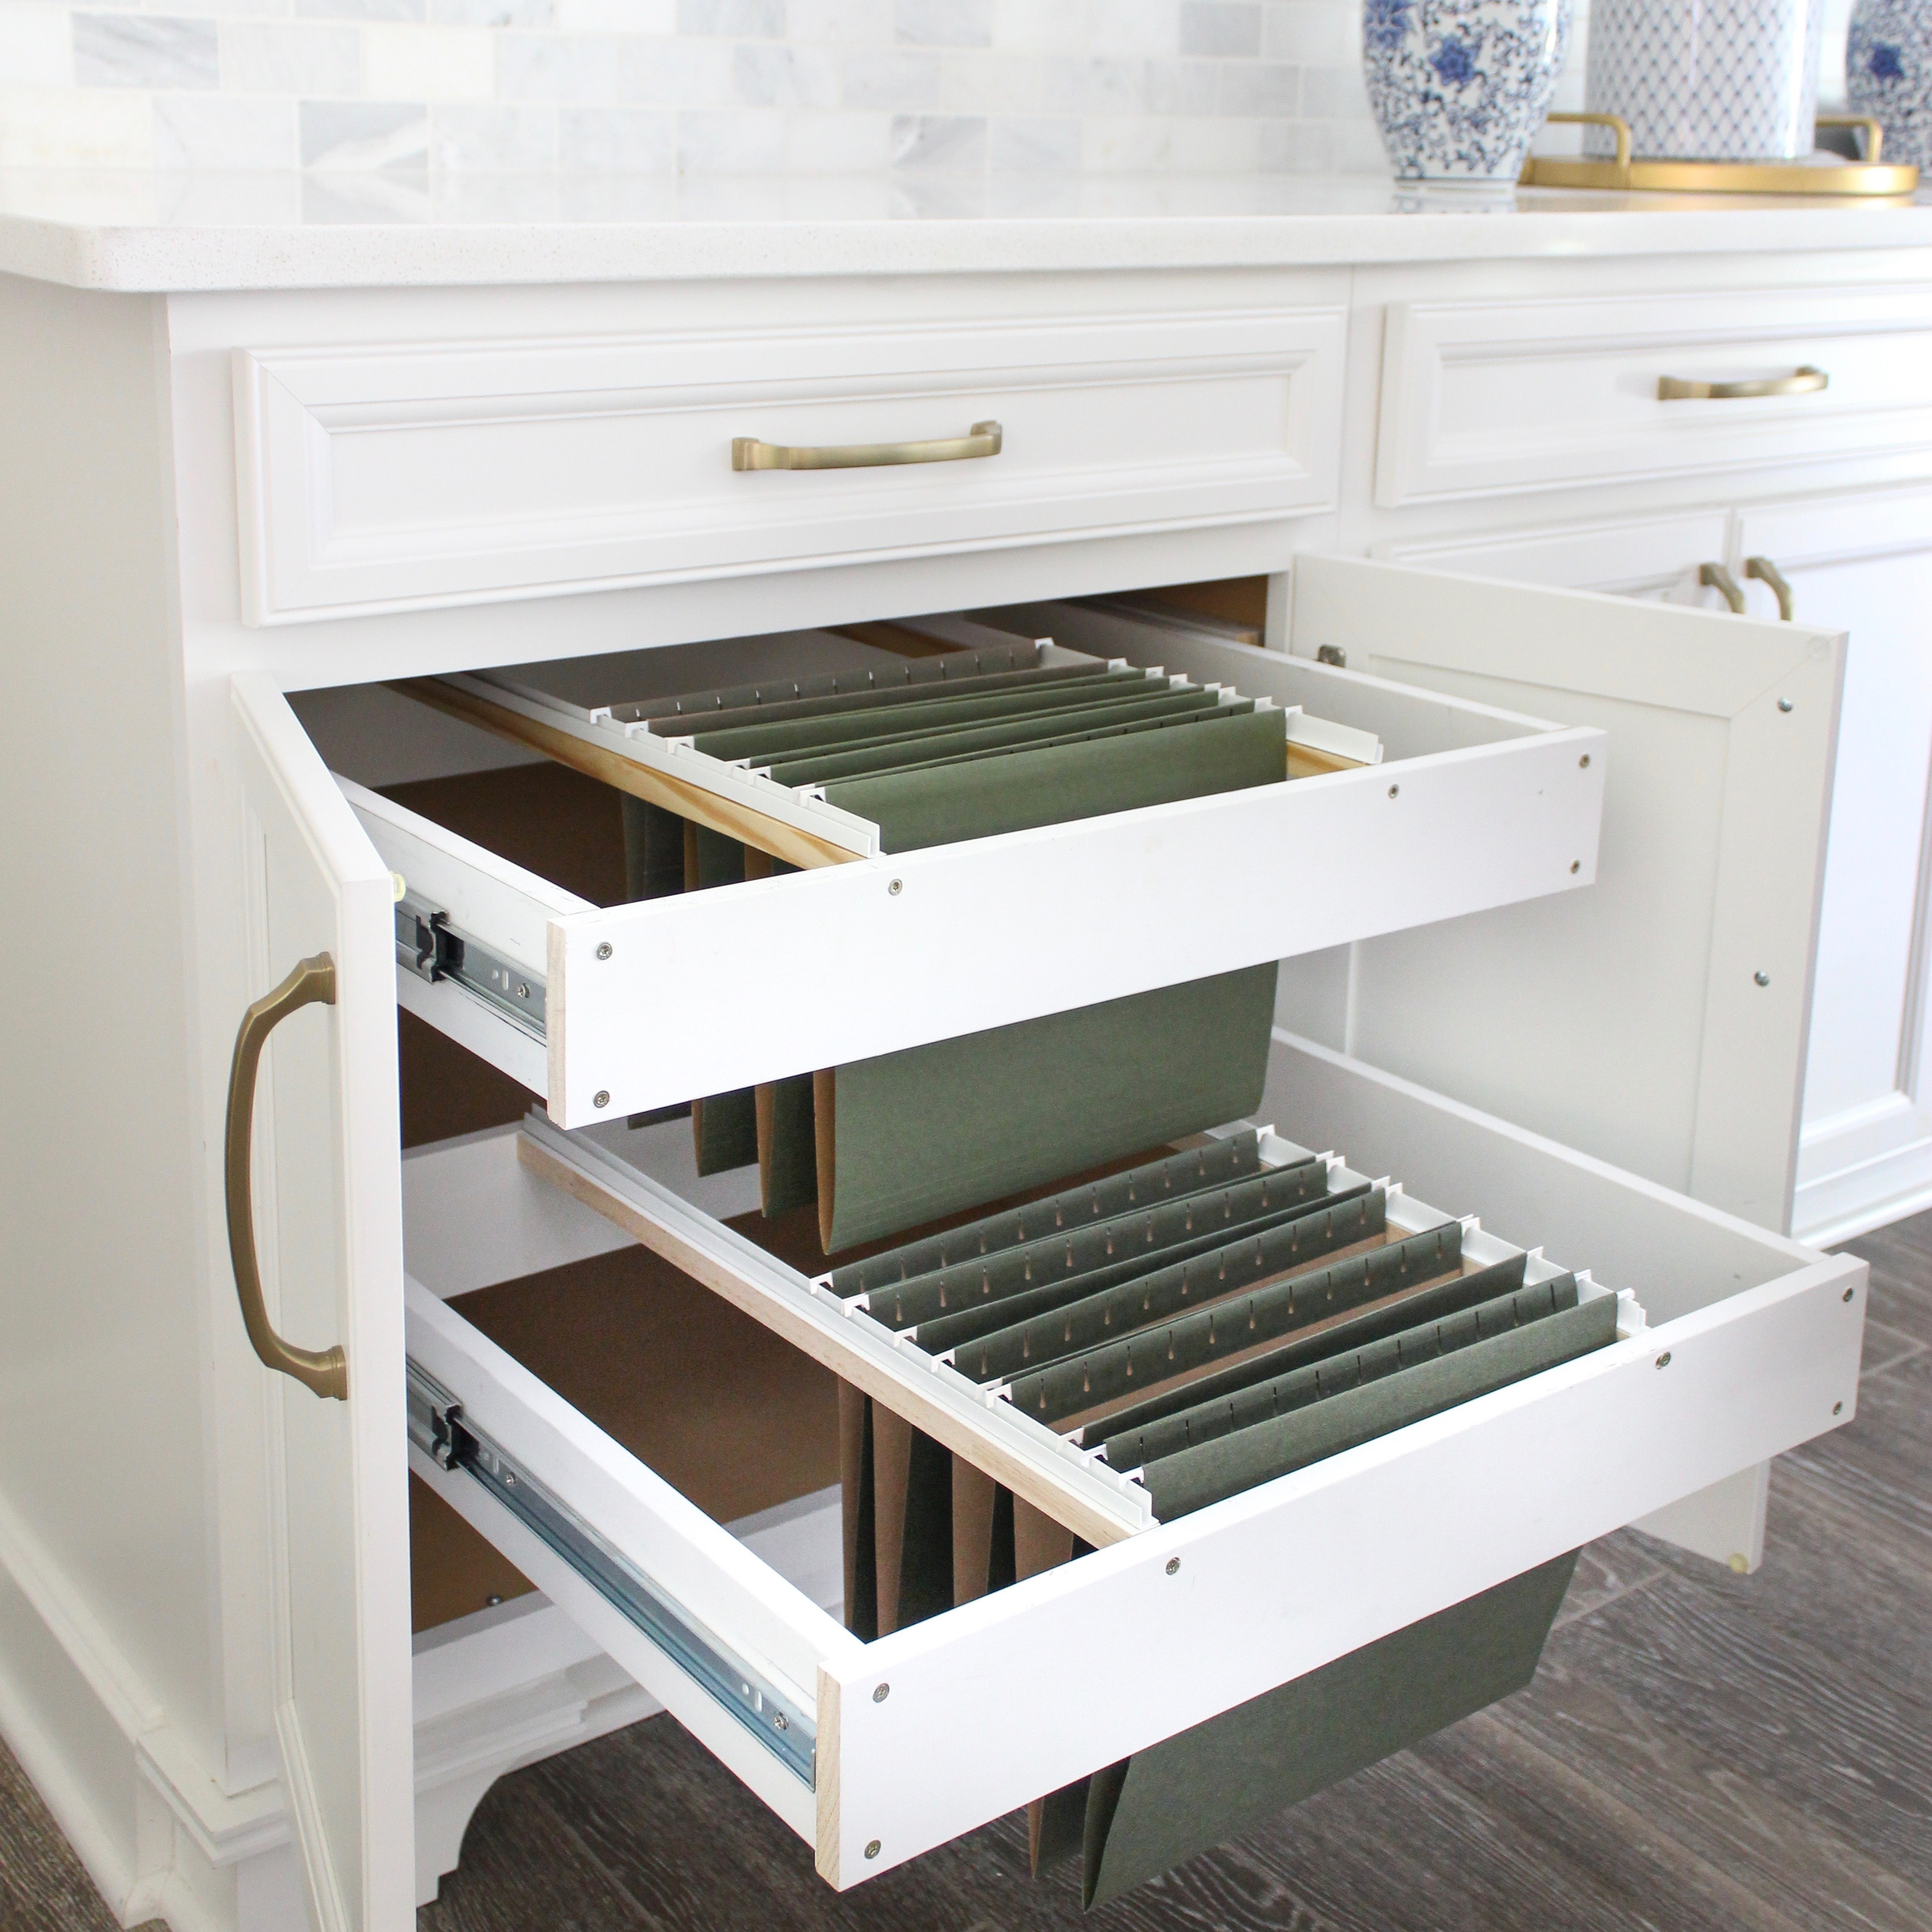 Diy Hanging File Drawer In Kitchen Cabinet Frills And Drills